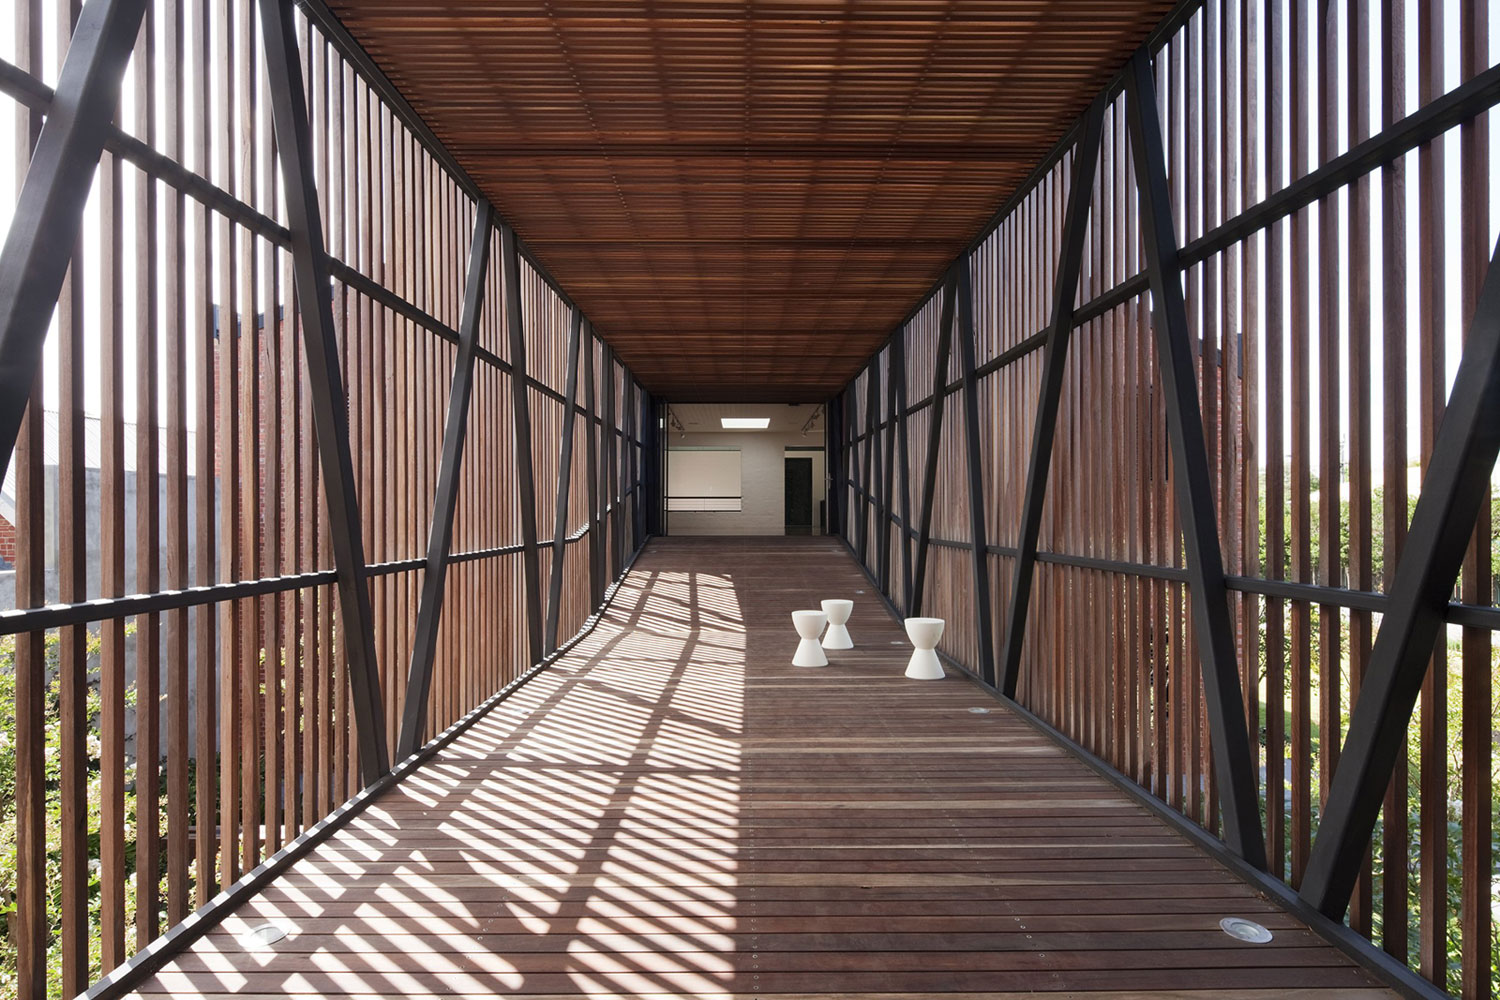 Golden Crust Bakery by Jackson Clements Burrows Arch. (10)